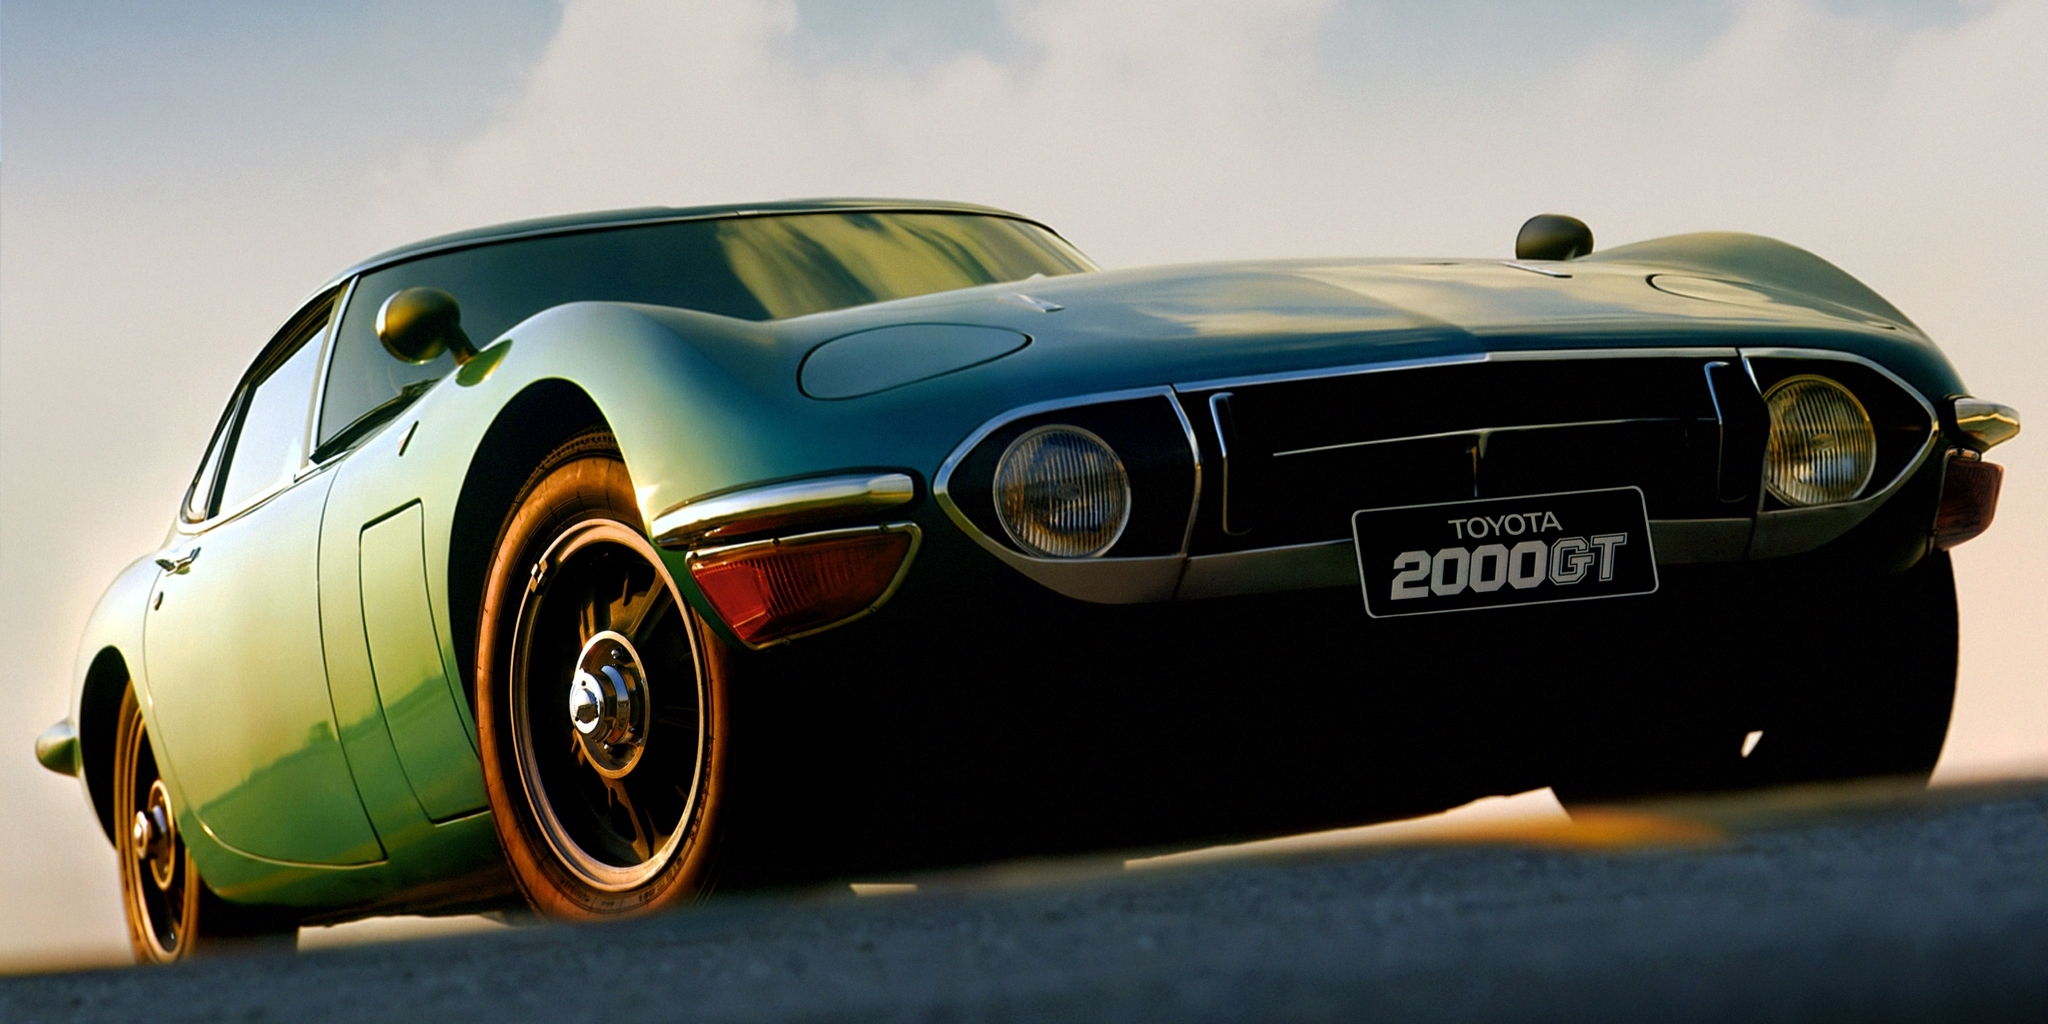 The 2000gt Proved Toyota Could Build A World Class Sports Car